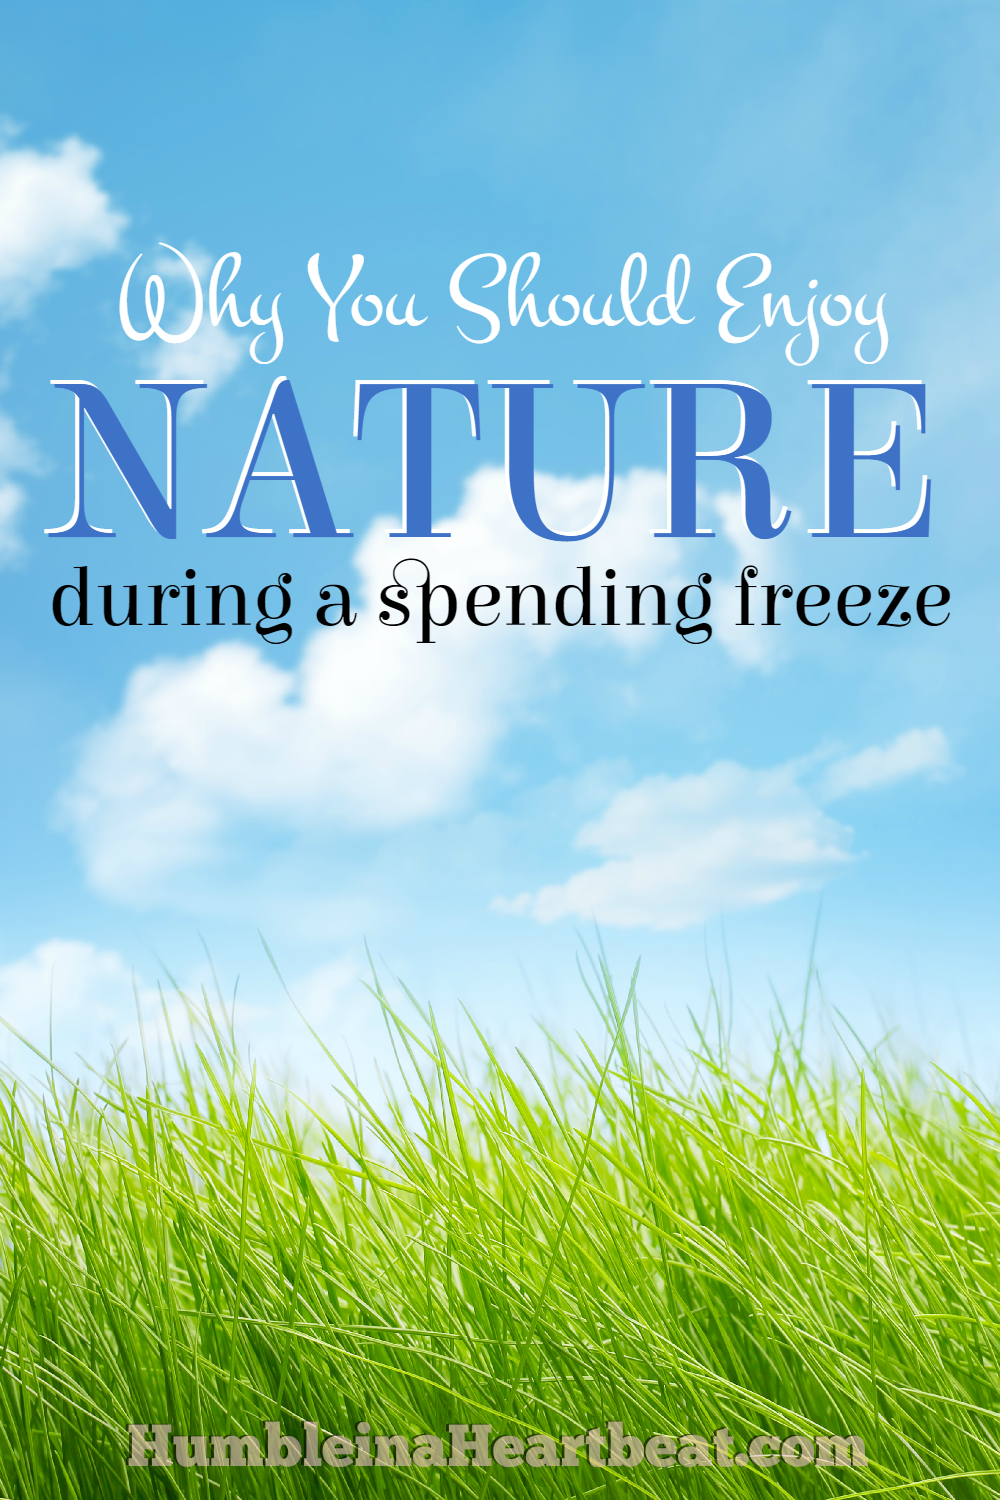 Give back to nature and enjoy it while enduring a spending freeze. It will help you forget your own problems and be more grateful for what you already have.